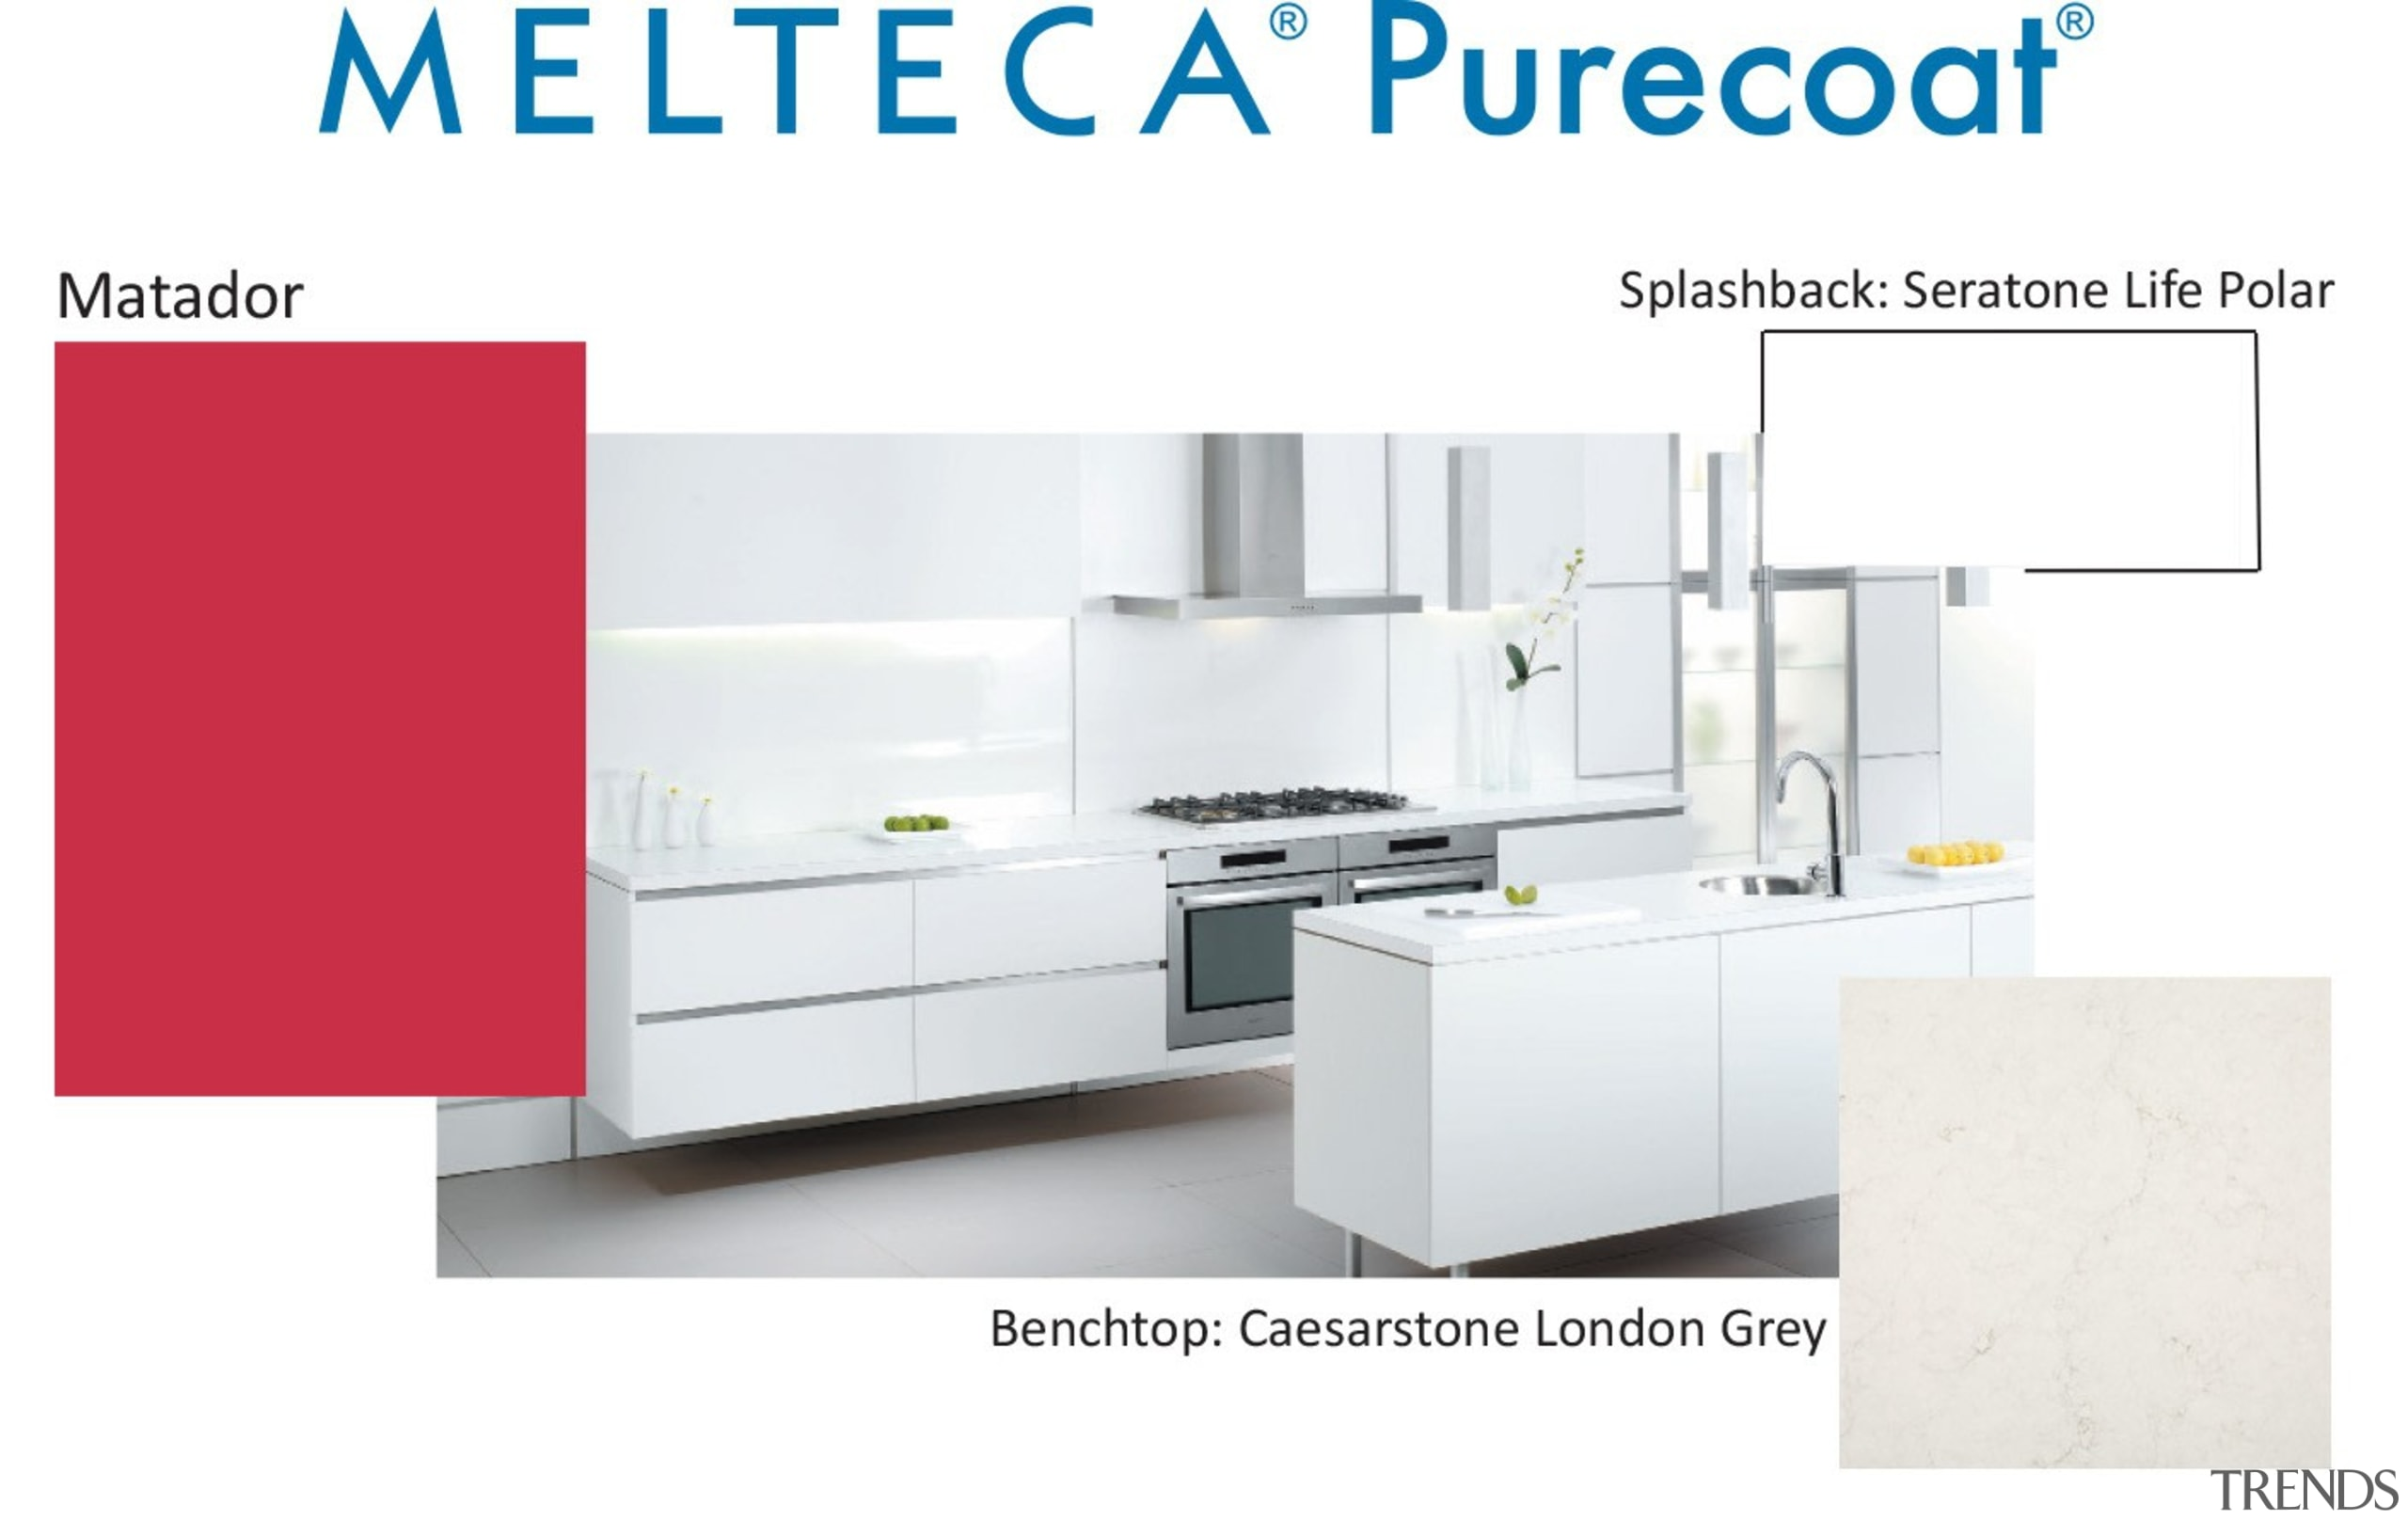 New Zealand made Melteca Purecoat surfaces utilise cutting-edge furniture, kitchen, product, product design, white